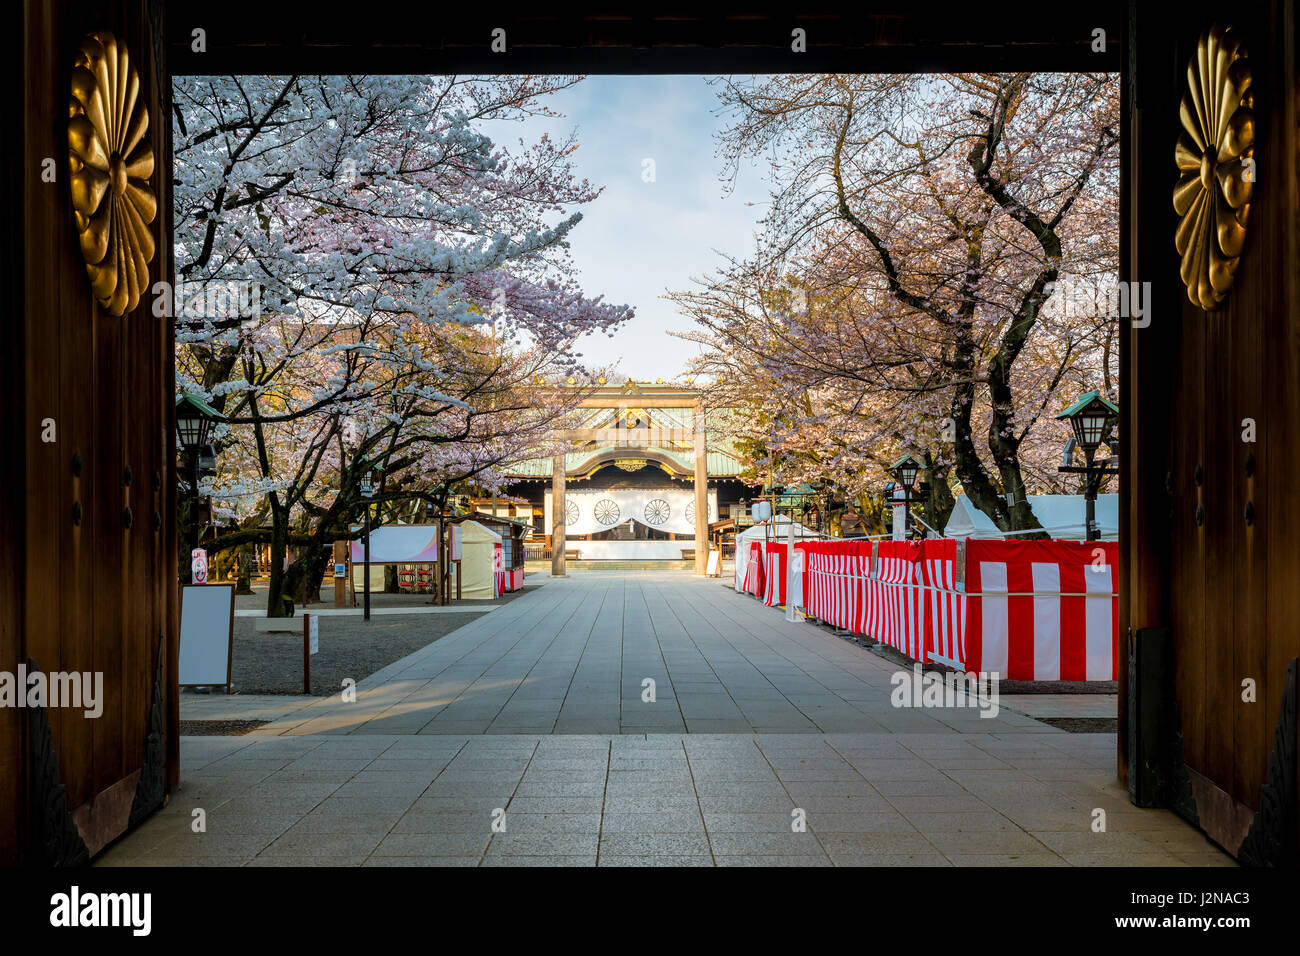 Cherry blossom at Yasukuni Shrine, Tokyo, Japan. a famous Tourist spot in Tokyo, Japan. - Stock Image